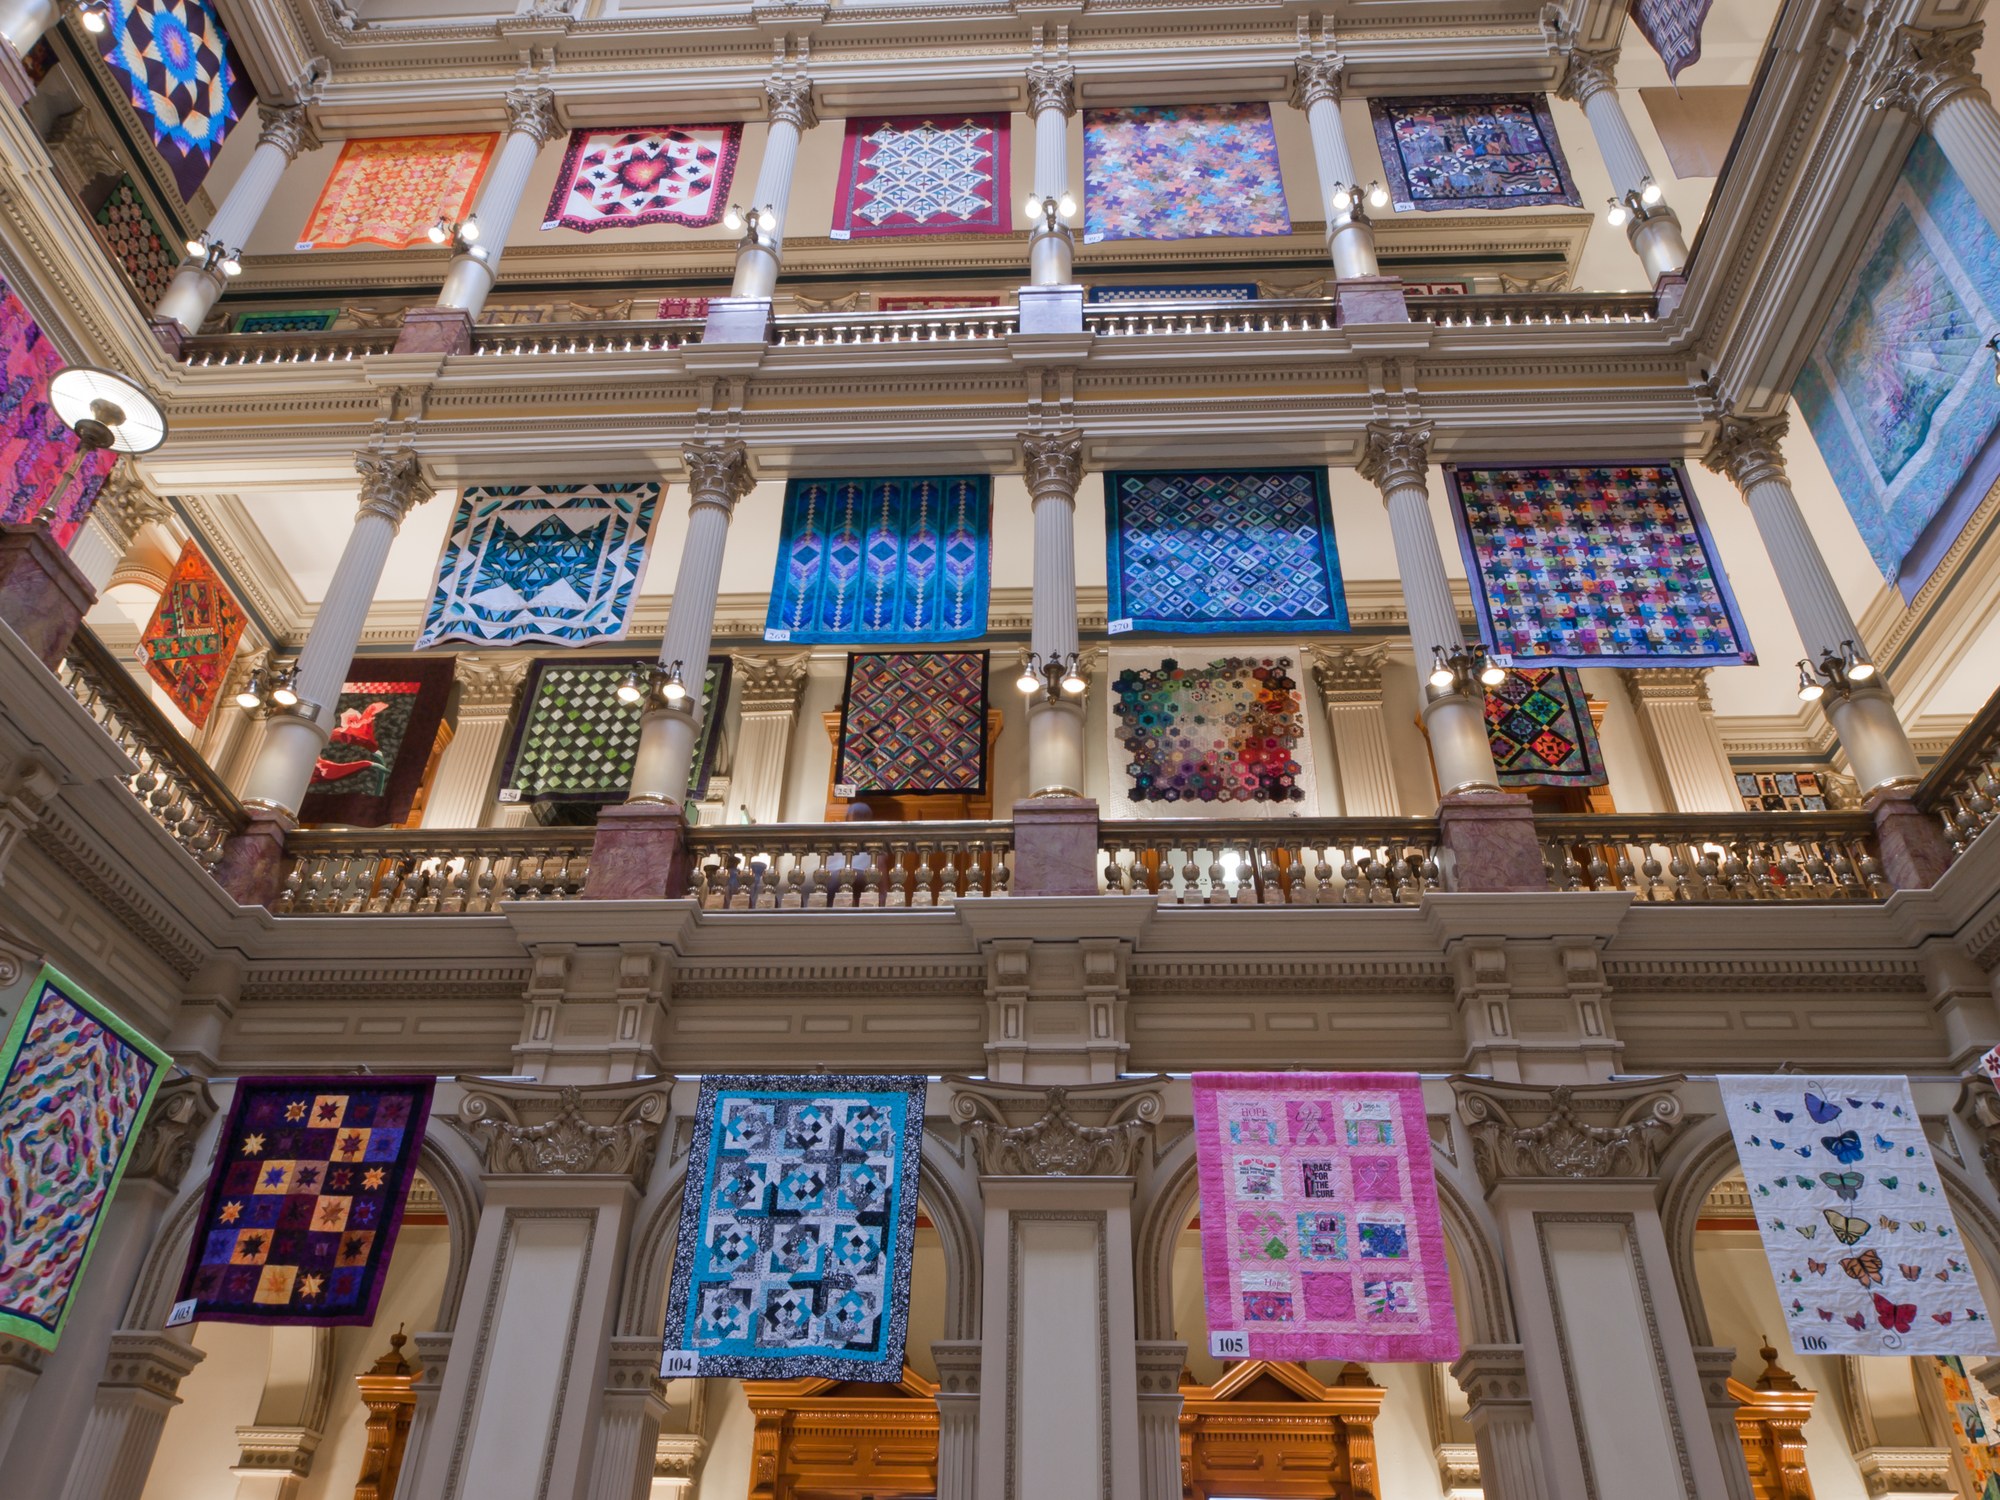 Denver, Colorado: Capitol quilt show 2011. Photo Arinahabich08 | Dreamstime